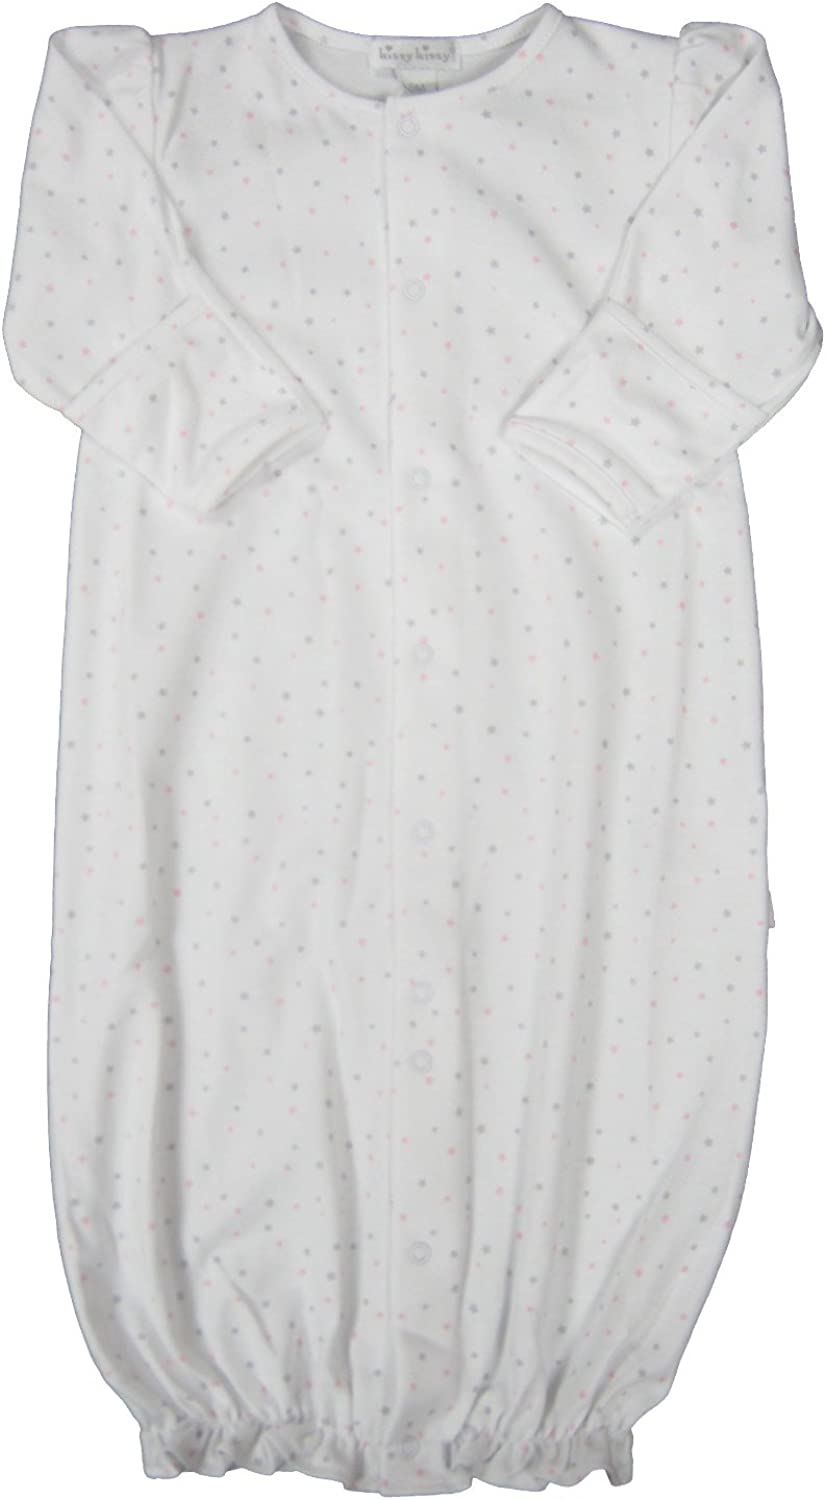 Kissy Kissy Baby-Girls Infant Sweetest Dreams Convertible Gown